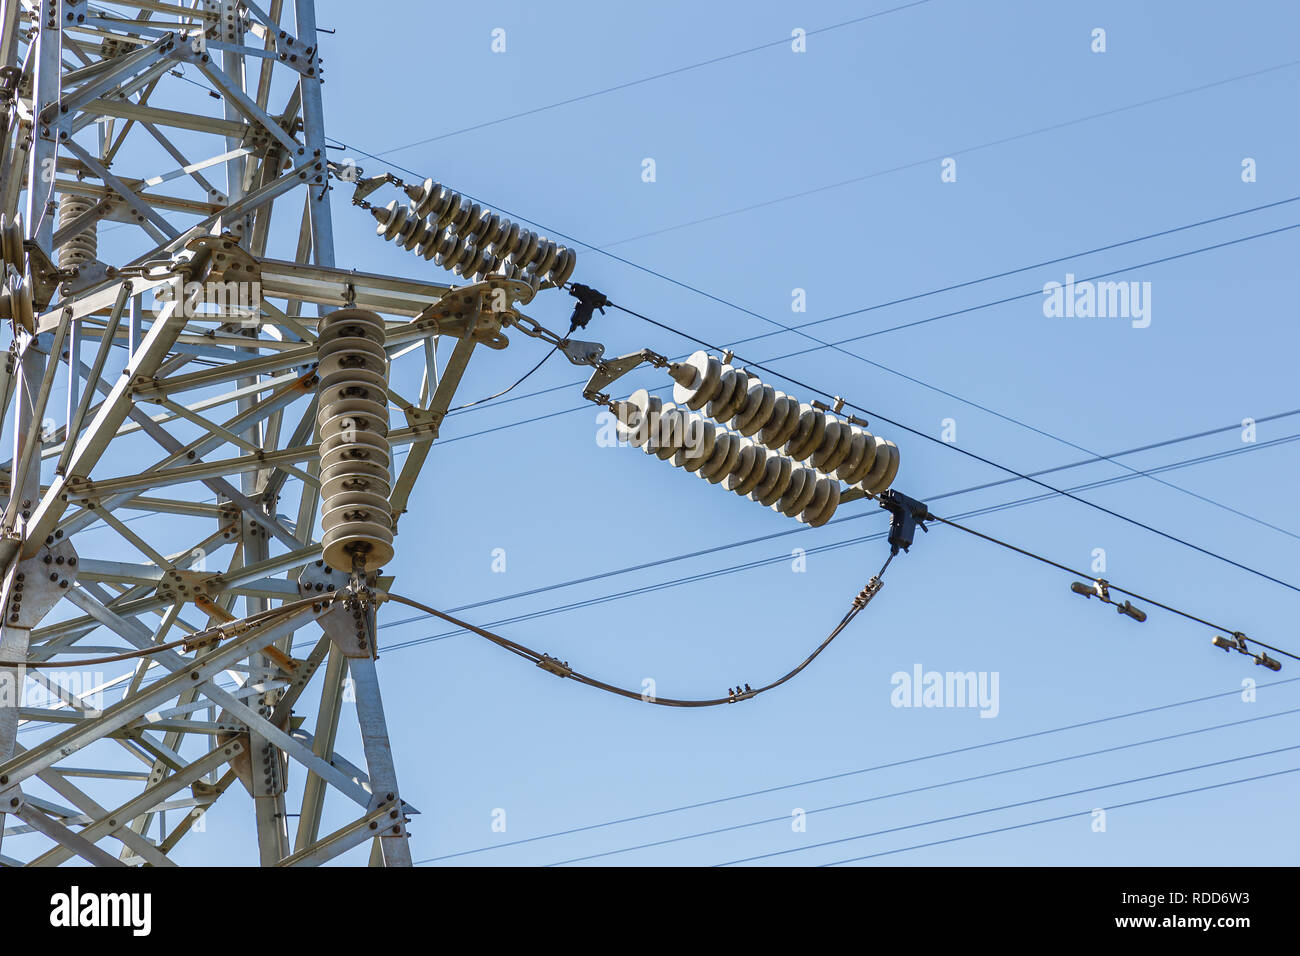 High-voltage electrical insulator electric line against the